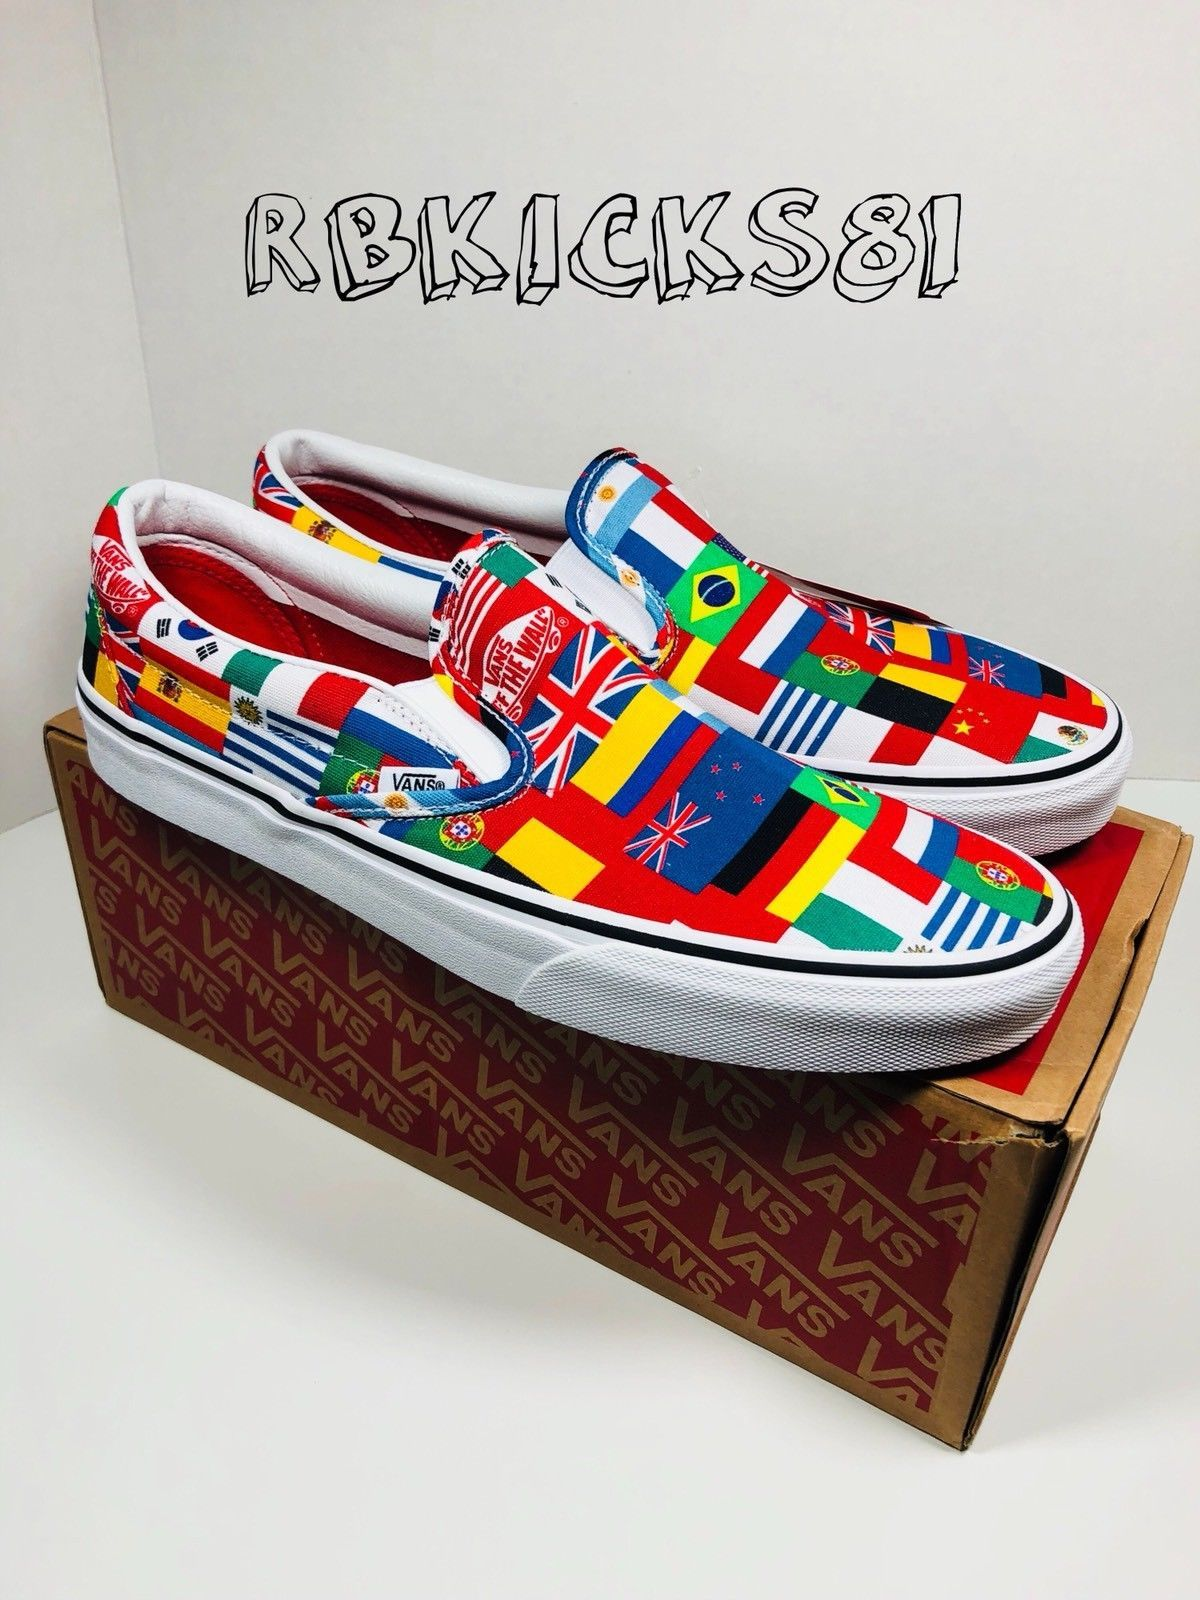 36e0047225f Vans Slip On World Cup 2018 White Multicolor National Flags Mens Sz 10.5  Discount Price 84.99 Free Shipping Buy it Now